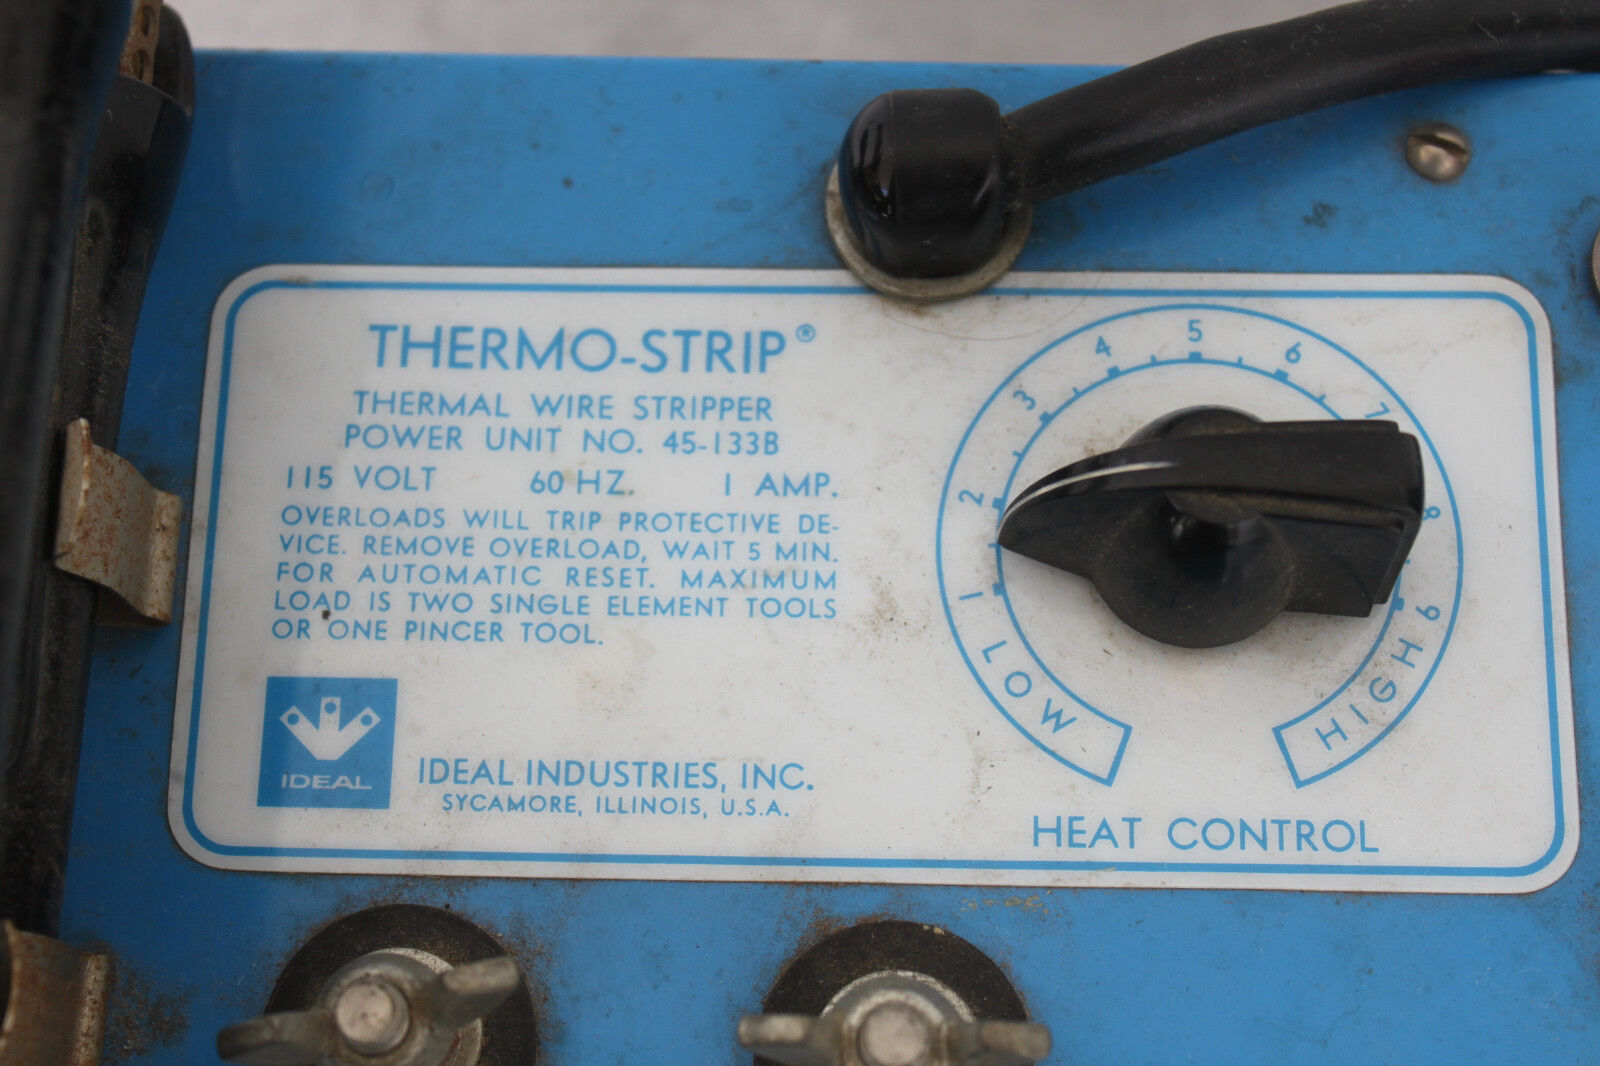 Ideal Industries Thermo-strip Thermal Wire Stripper Power Unit No ...